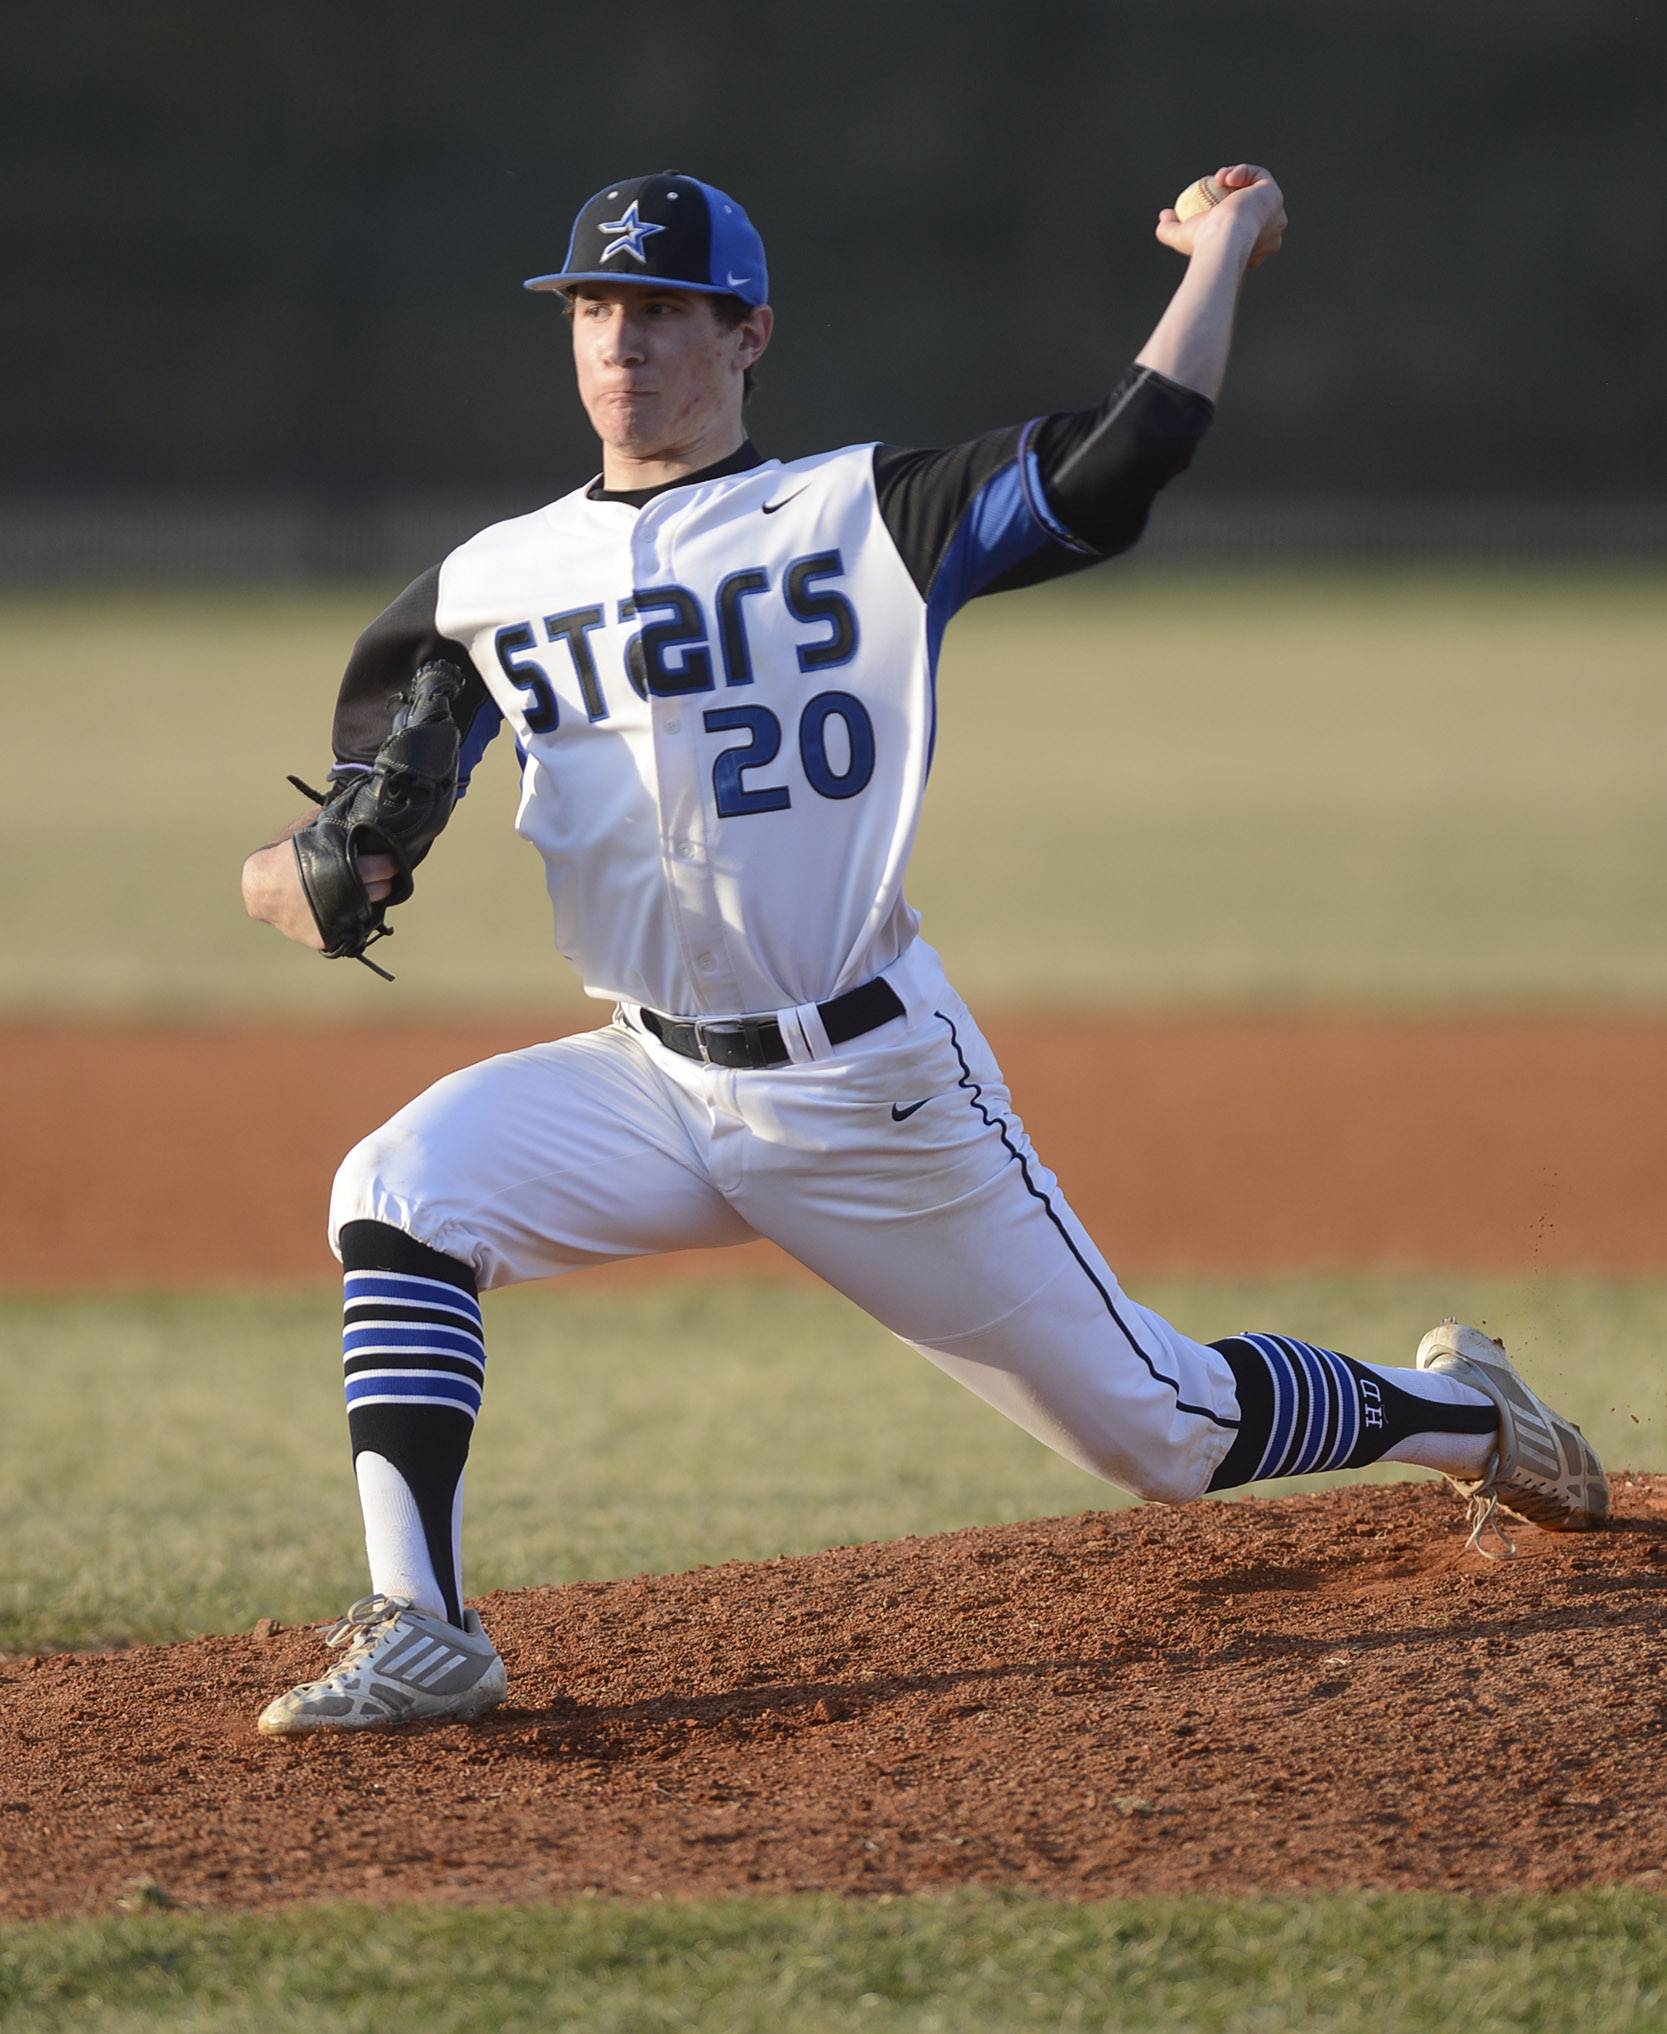 St. Charles North's Cory Wright pitches on Friday, April 11.